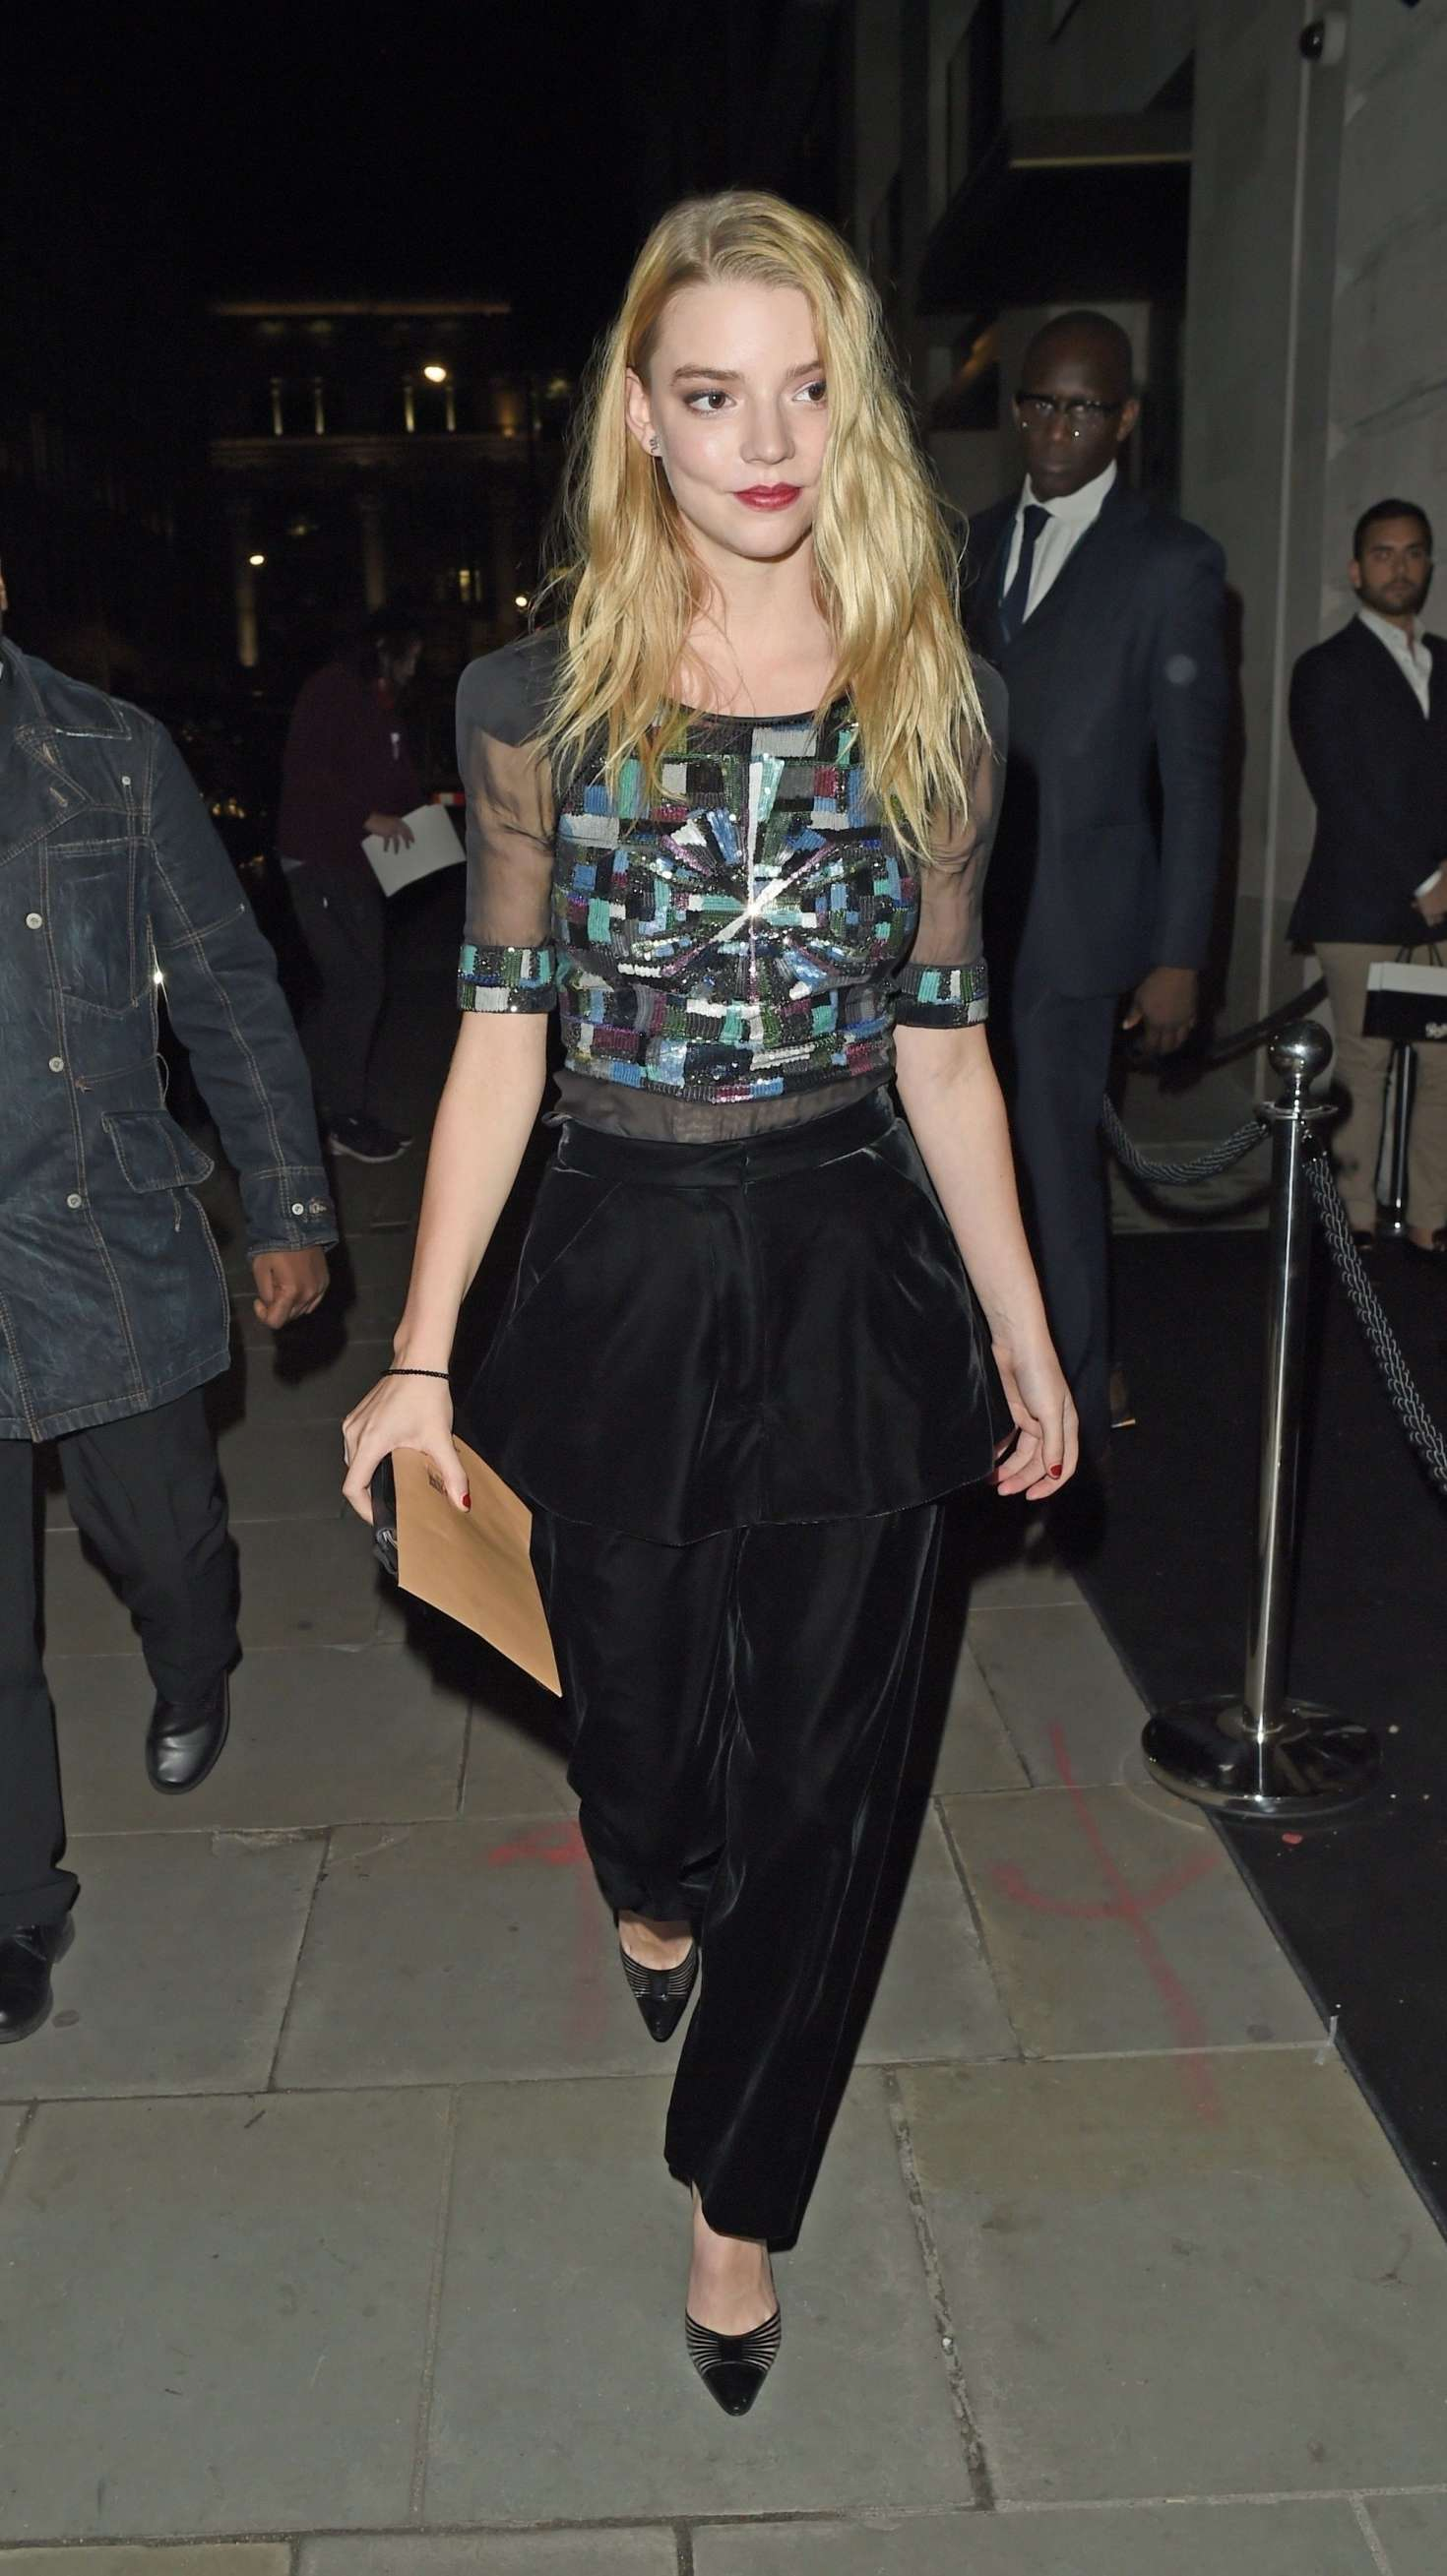 Anya Taylor-Joy - Leaving the BFI party in London